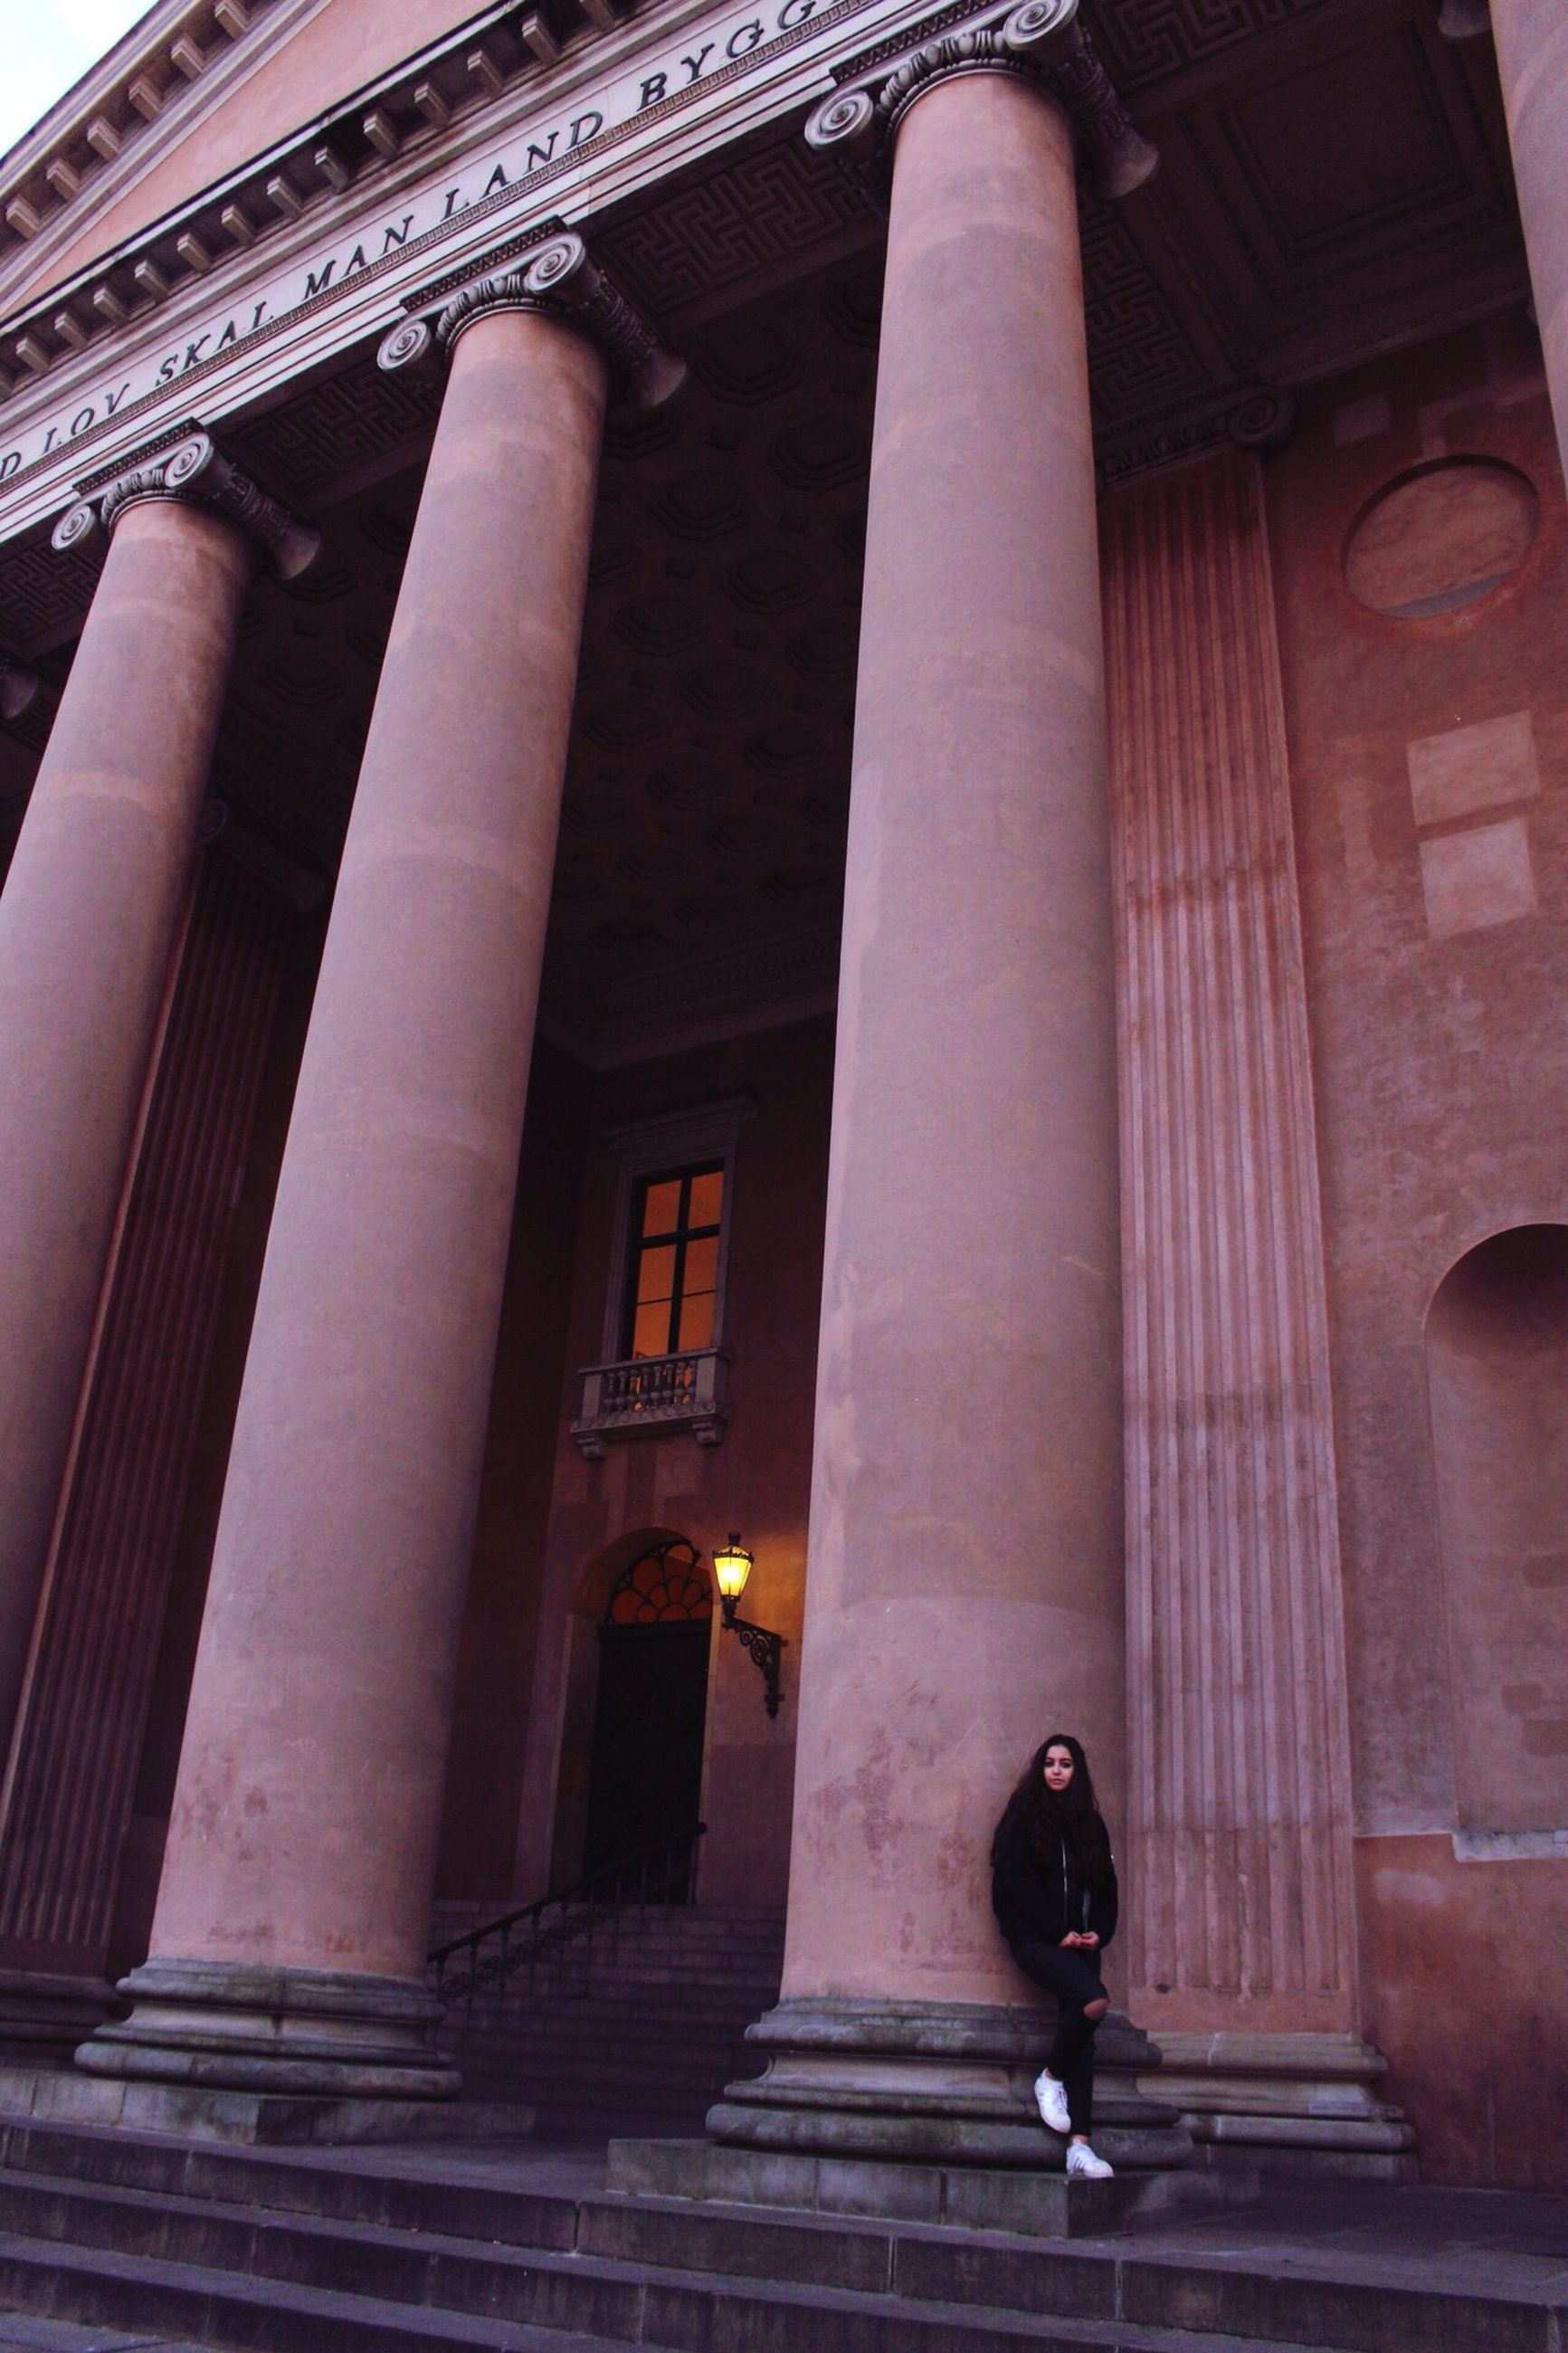 architecture, built structure, building exterior, architectural column, outdoors, no people, illuminated, day